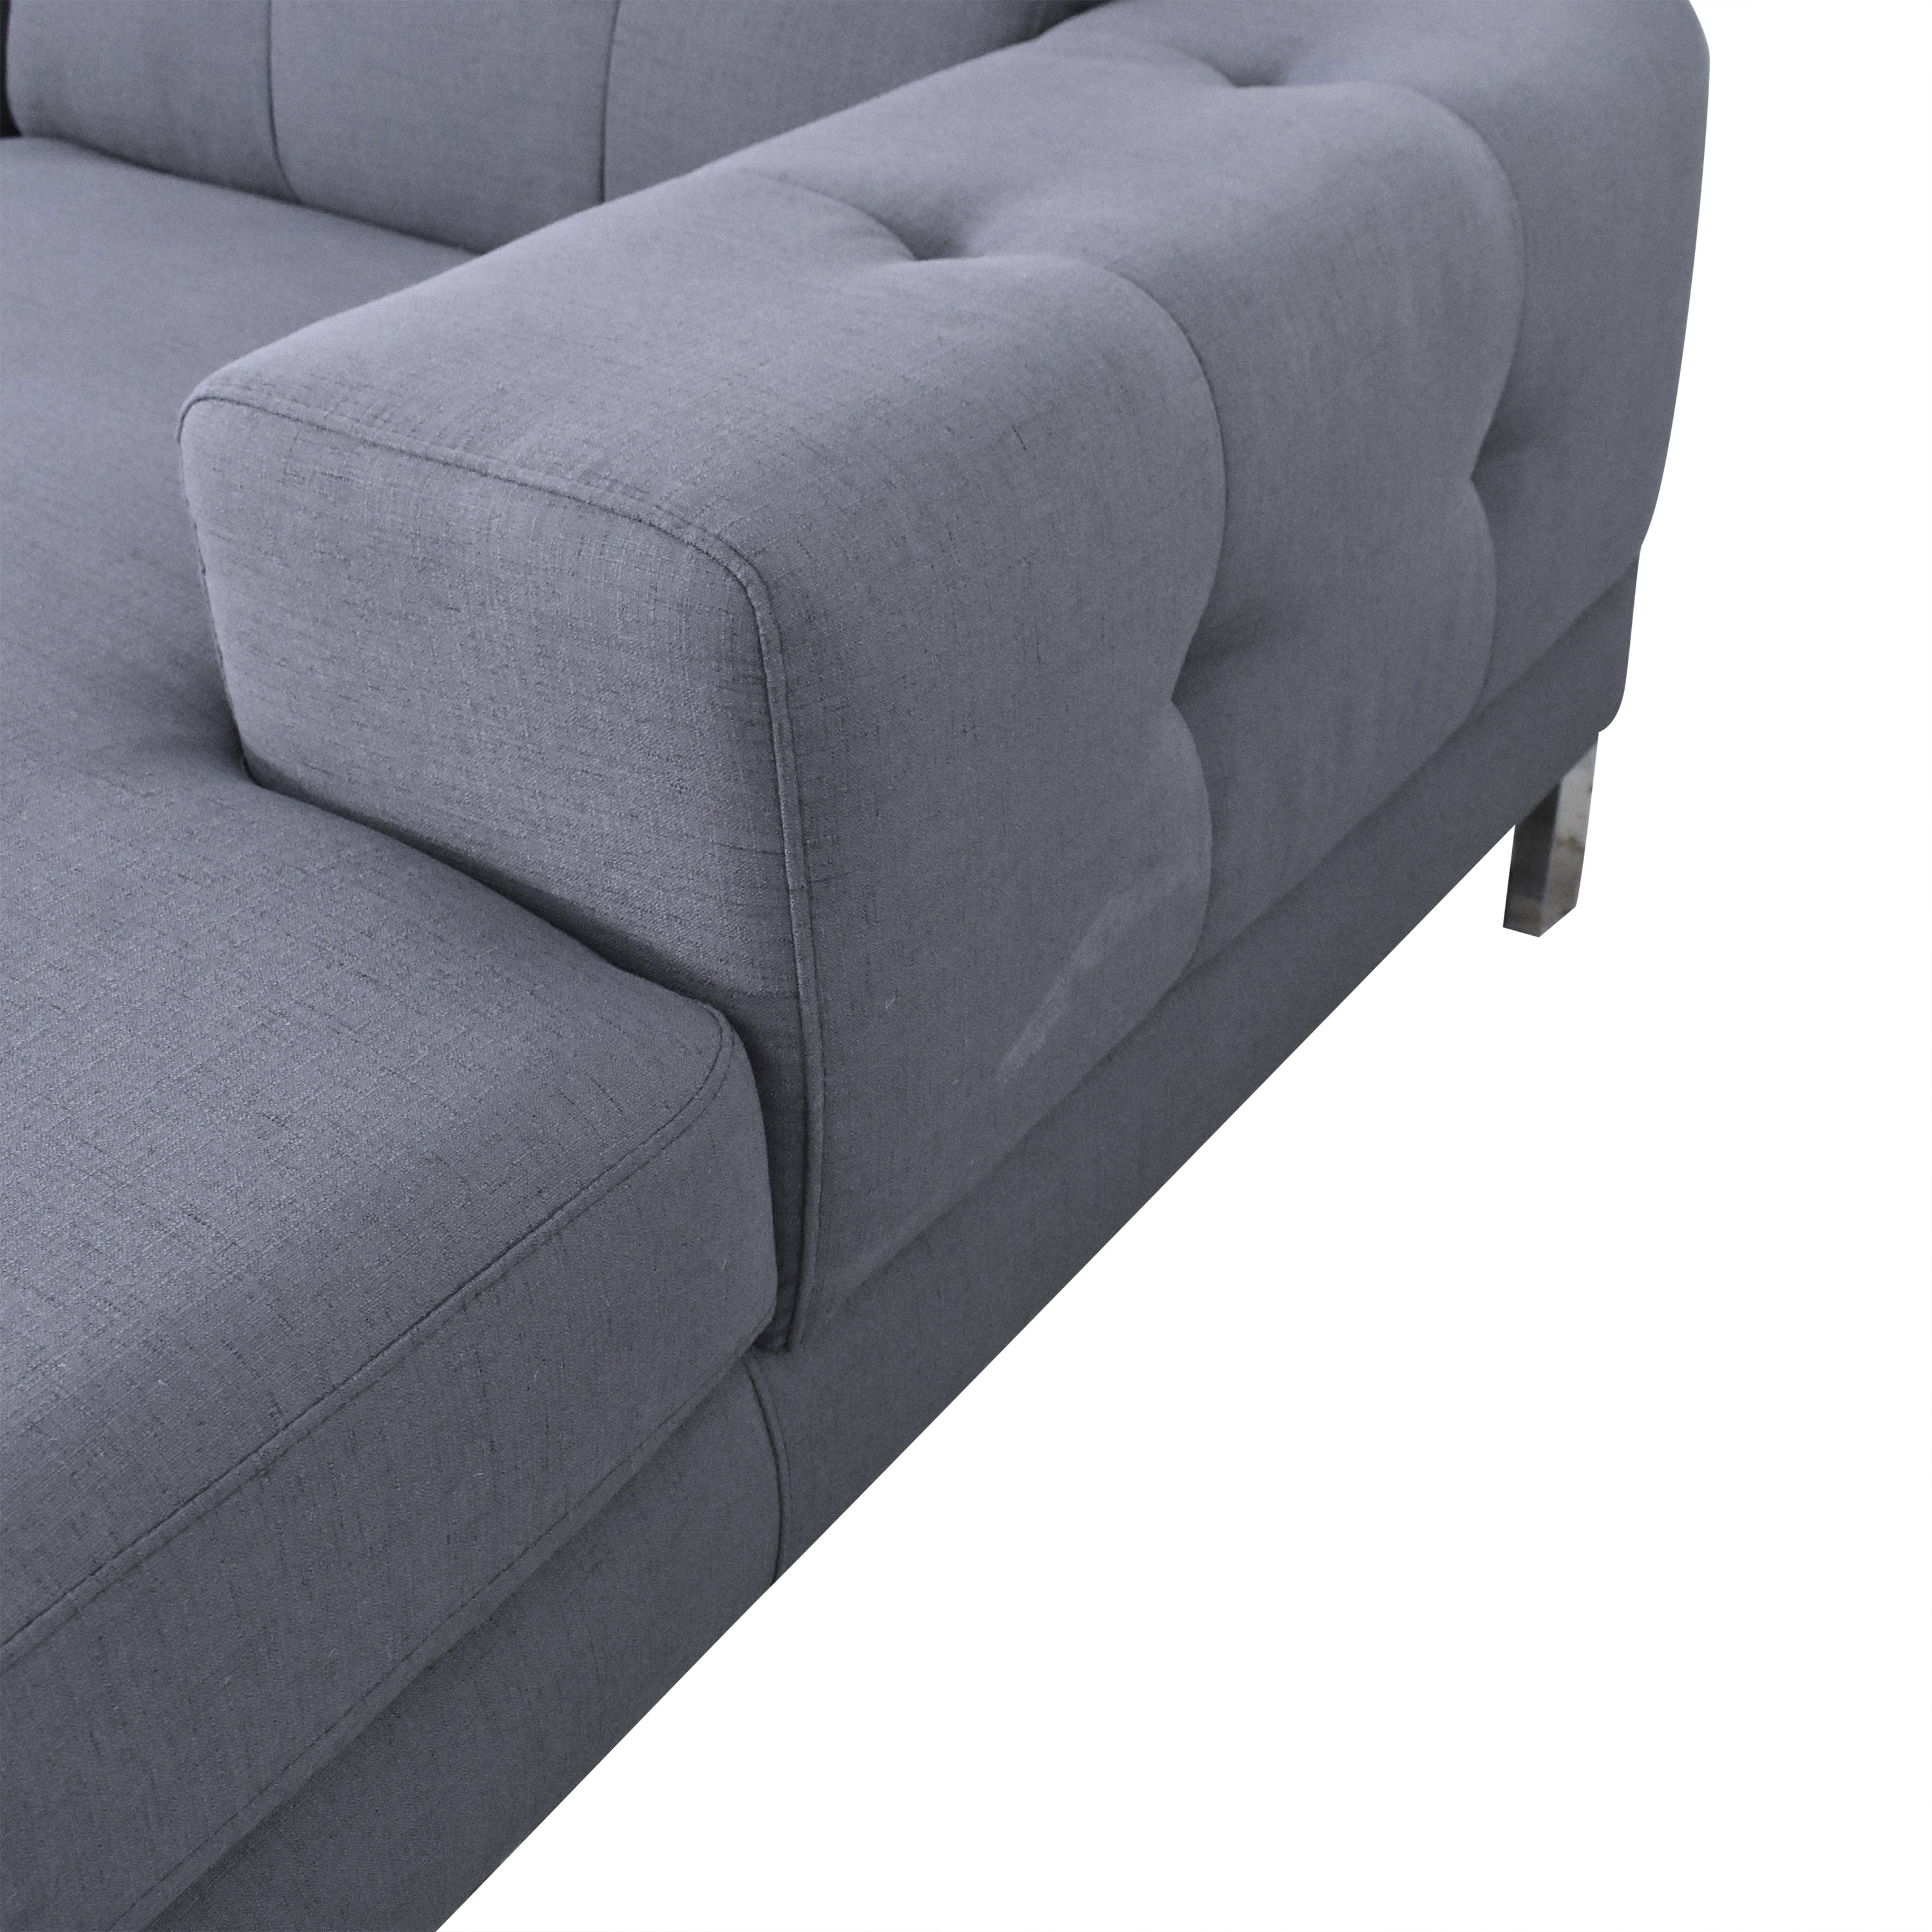 Overstock Overstock Halsted Tufted Chaise Sectional Sofa for sale